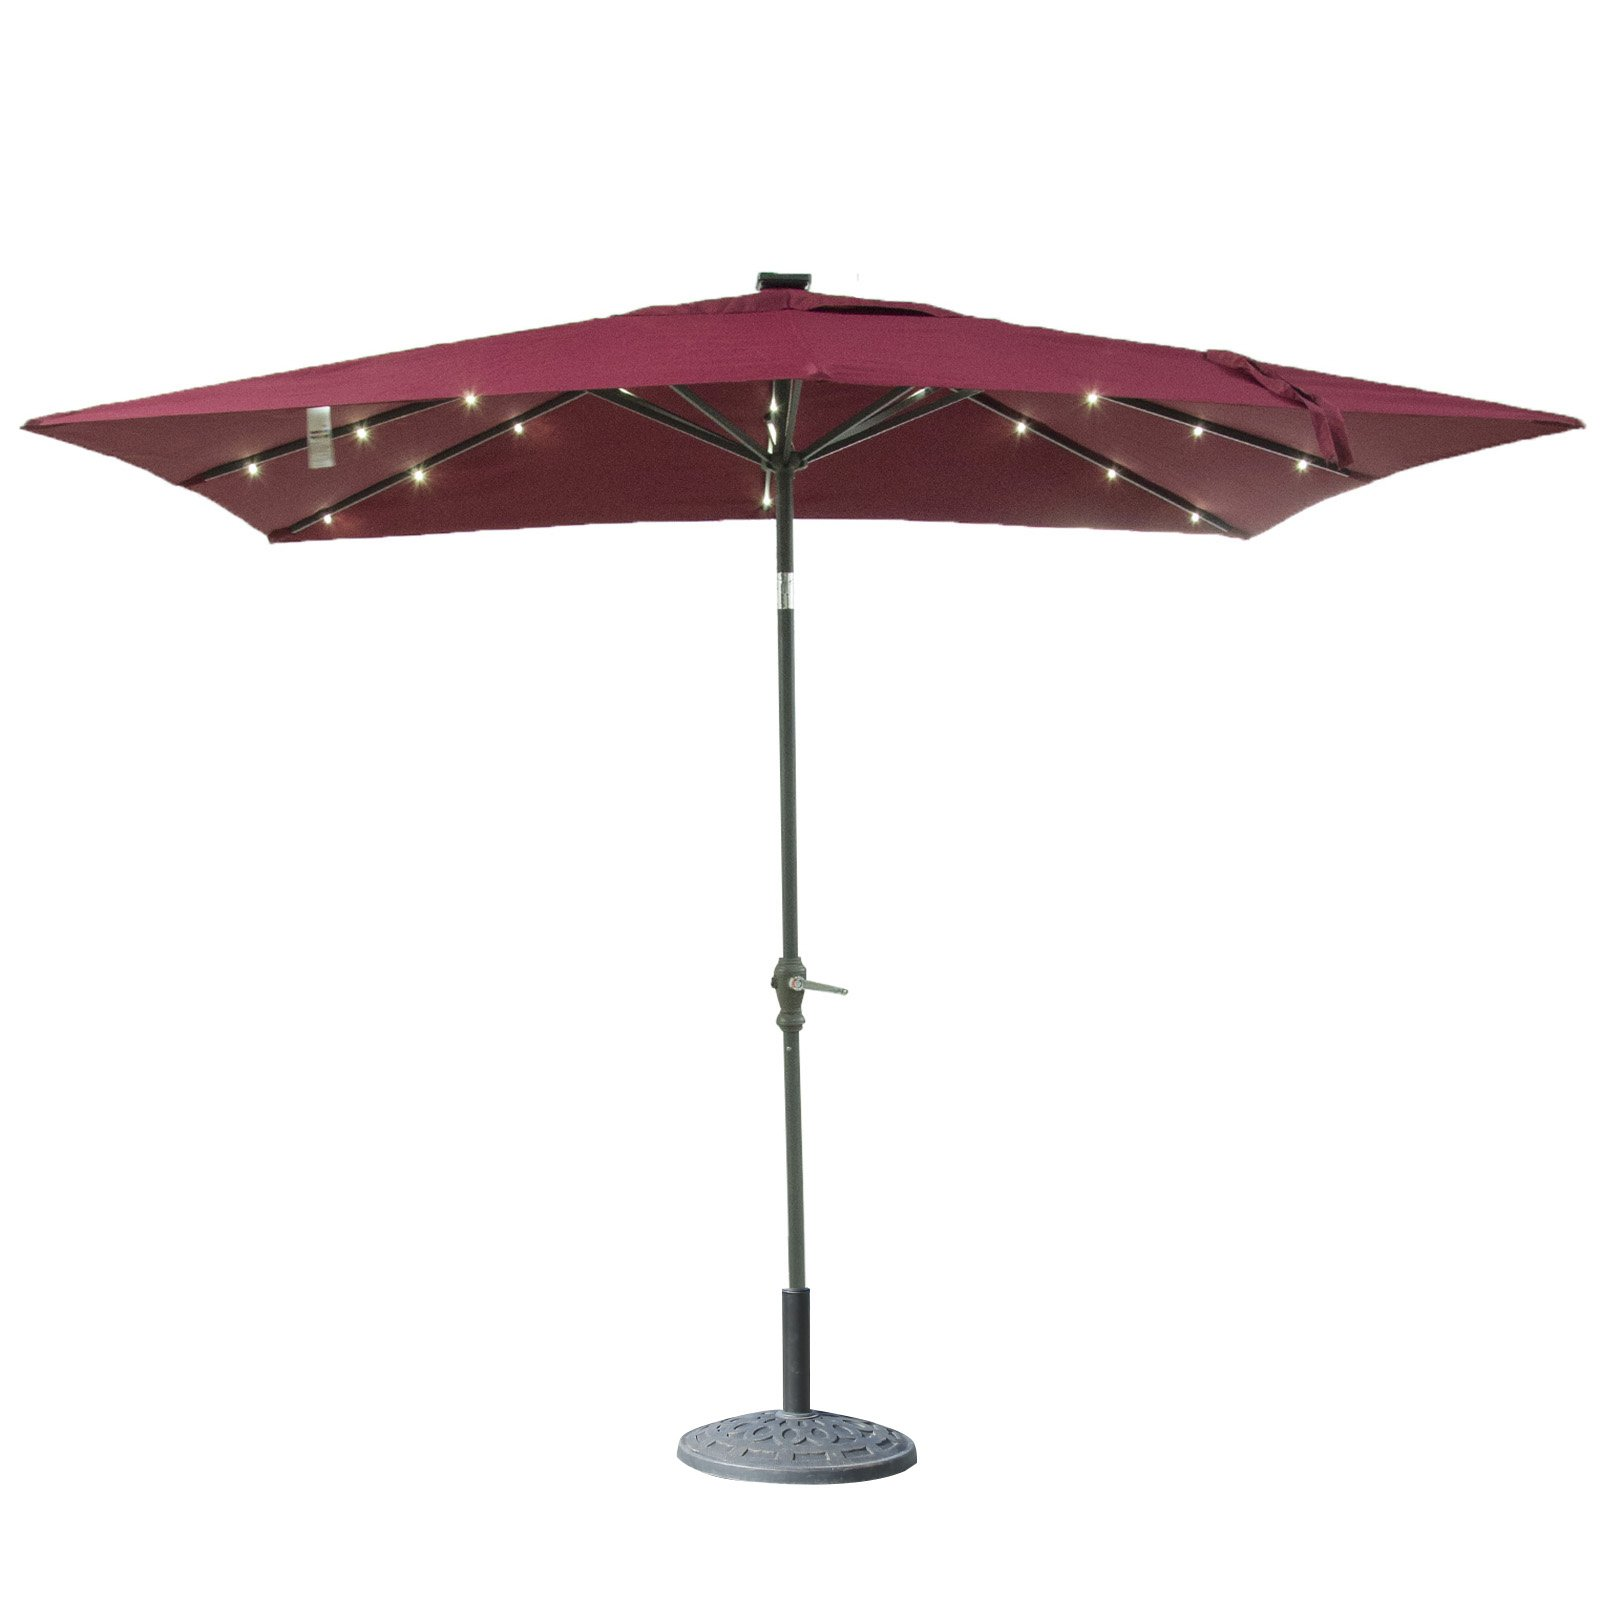 ORNO TTOBE 9x7 Foot 32 LED Light Solar Patio Outdoor Market Aluminum Umbrella with Push Button Wine Red, 8 Ribs